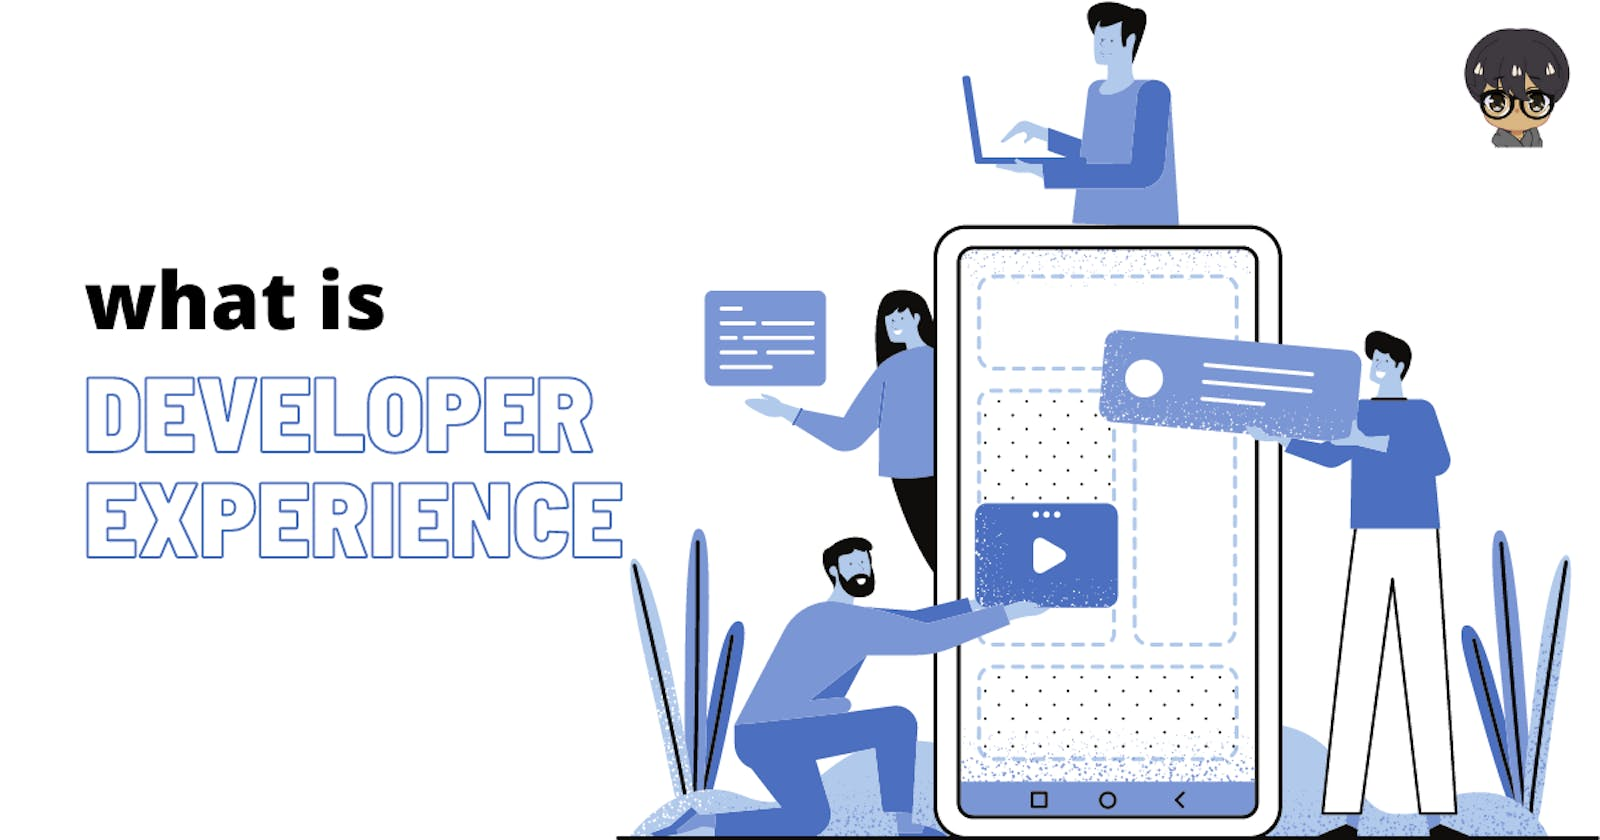 What is Developer Experience